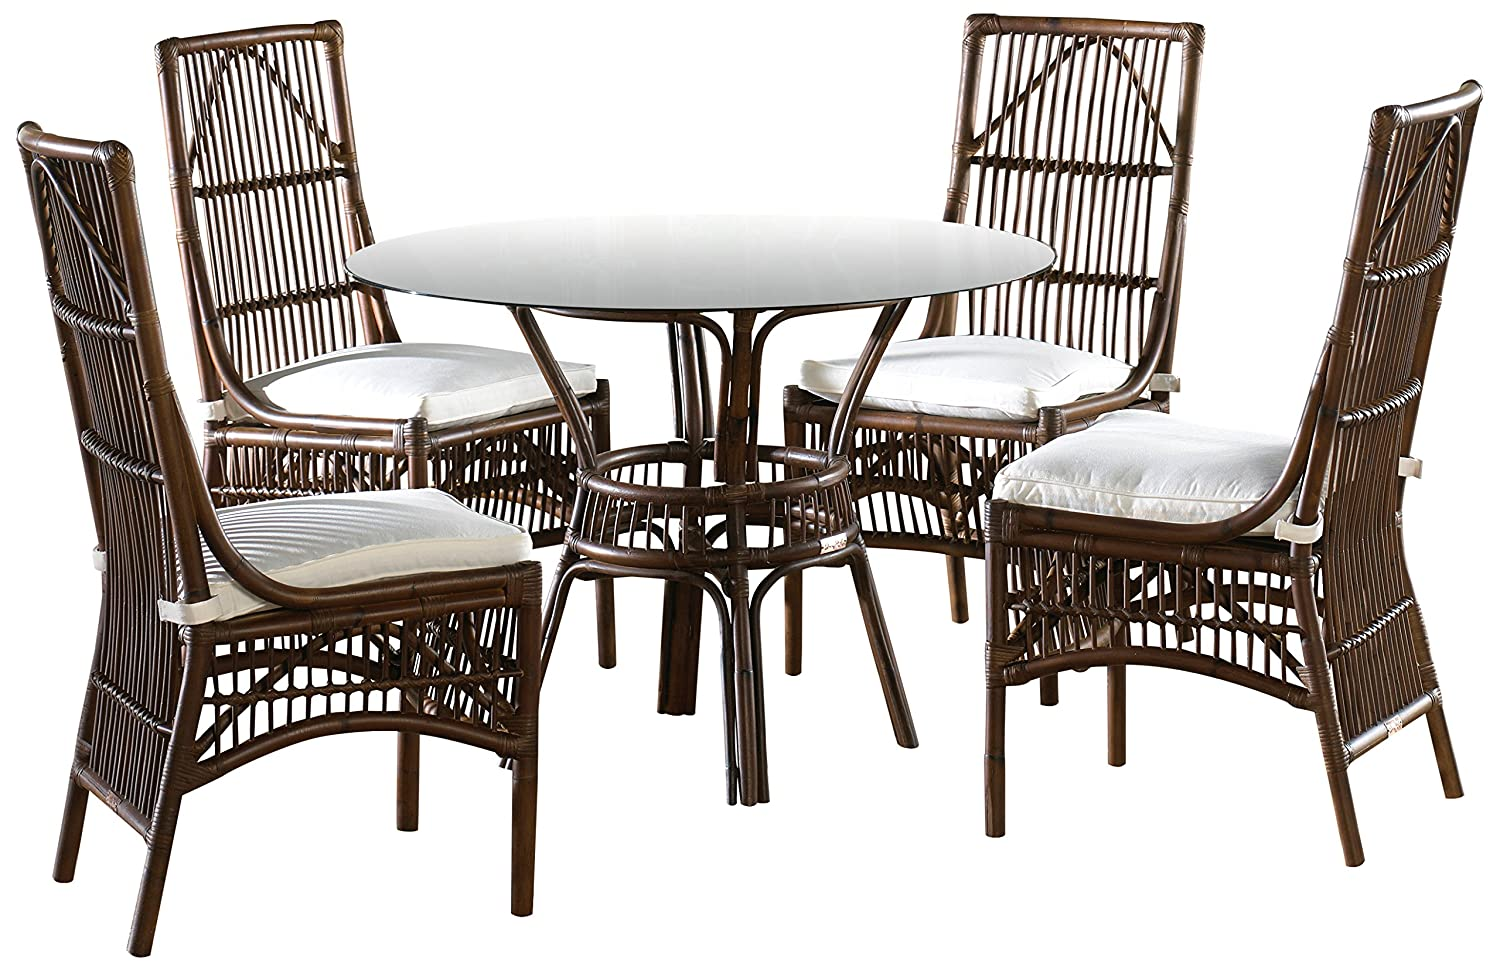 Panama Jack Sunrooms 6 PCPJS-2001-DIN Bora Bora Dining Set with Cushions, Sunbrella Canvas Coal